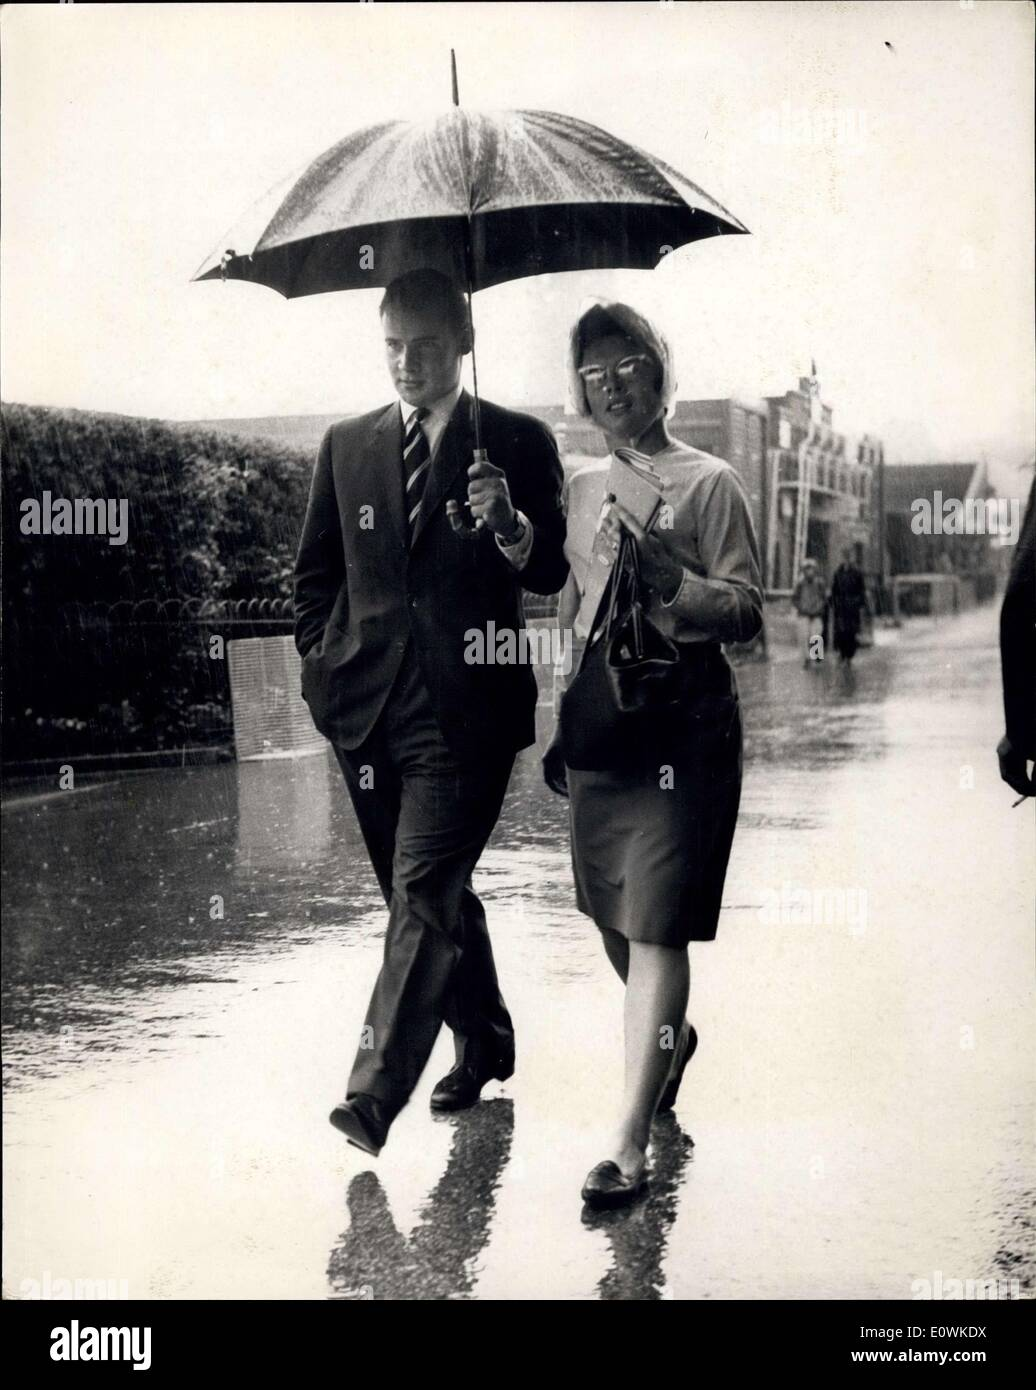 Jul. 06, 1963 - Heavy Rain Delays Play At Wimbledon: Heavy rain was delaying the start of play in the tennis tournament at Wimbledon this afternoon. Photo shows One of today's finalist Billie Jean Moffitt shares an umbrella with a friend at Wimbledon this afternoon. - Stock Image